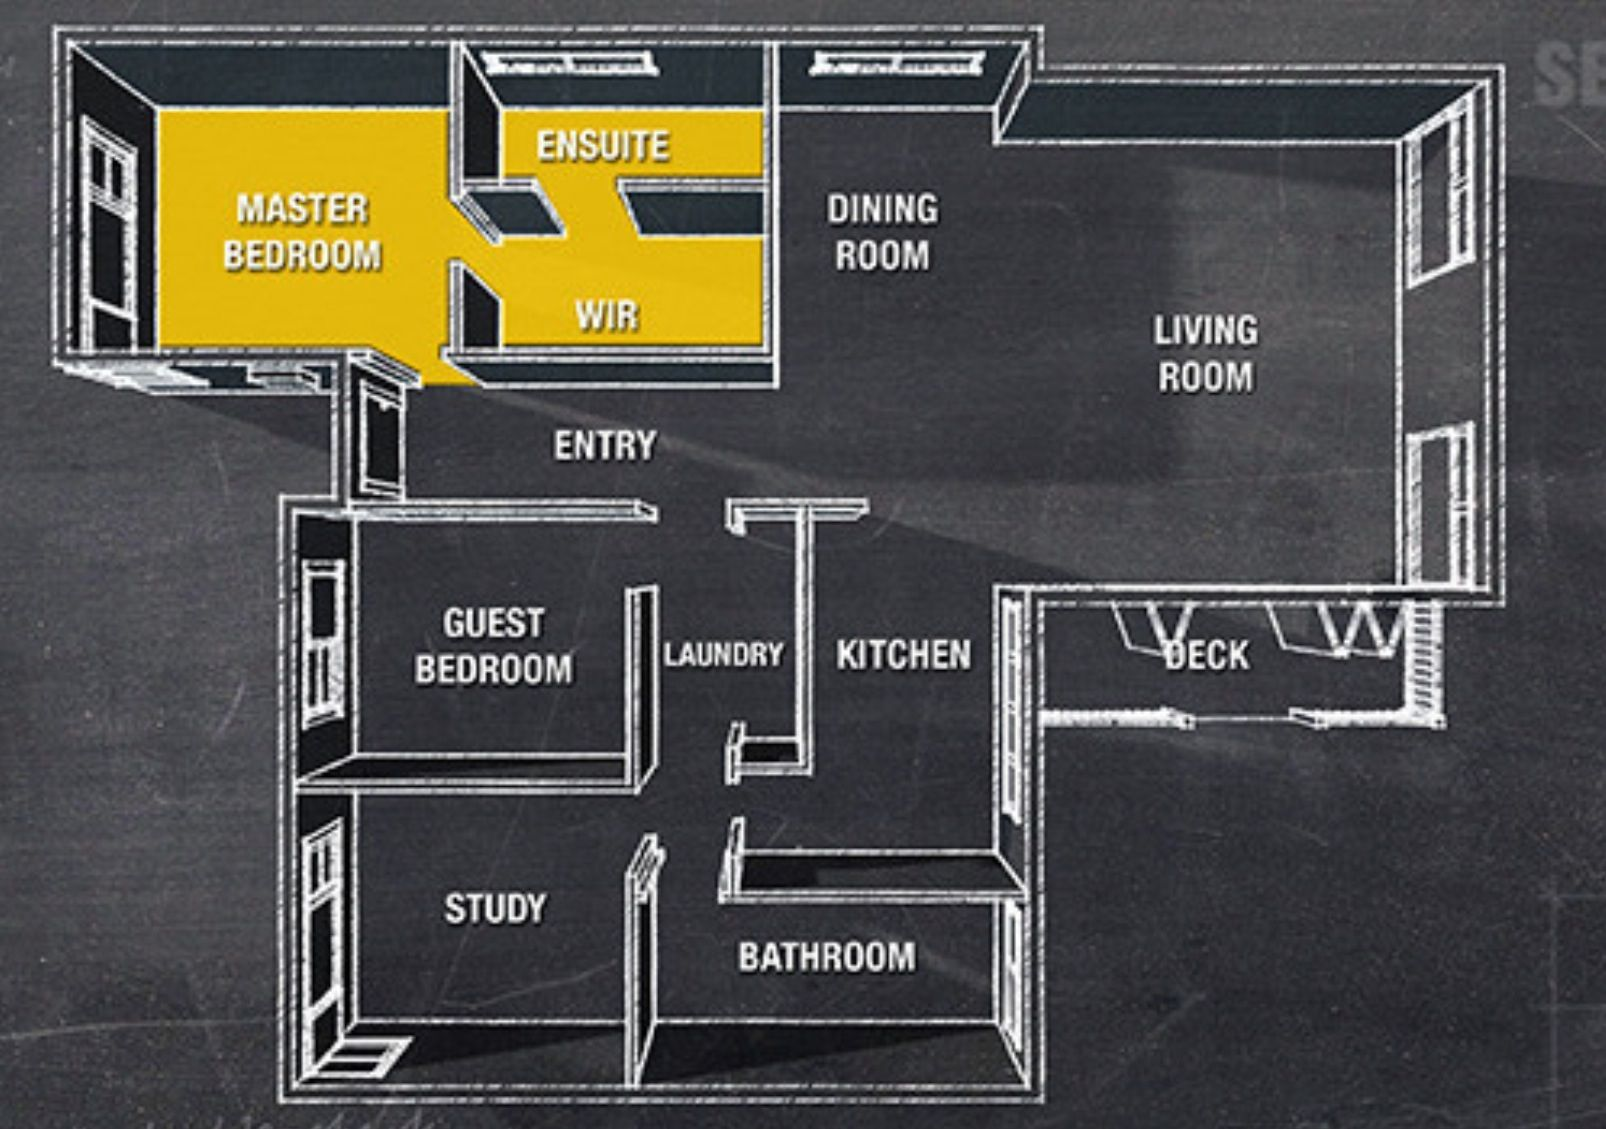 House rules floor plan. | House interior | Pinterest | House rules ...